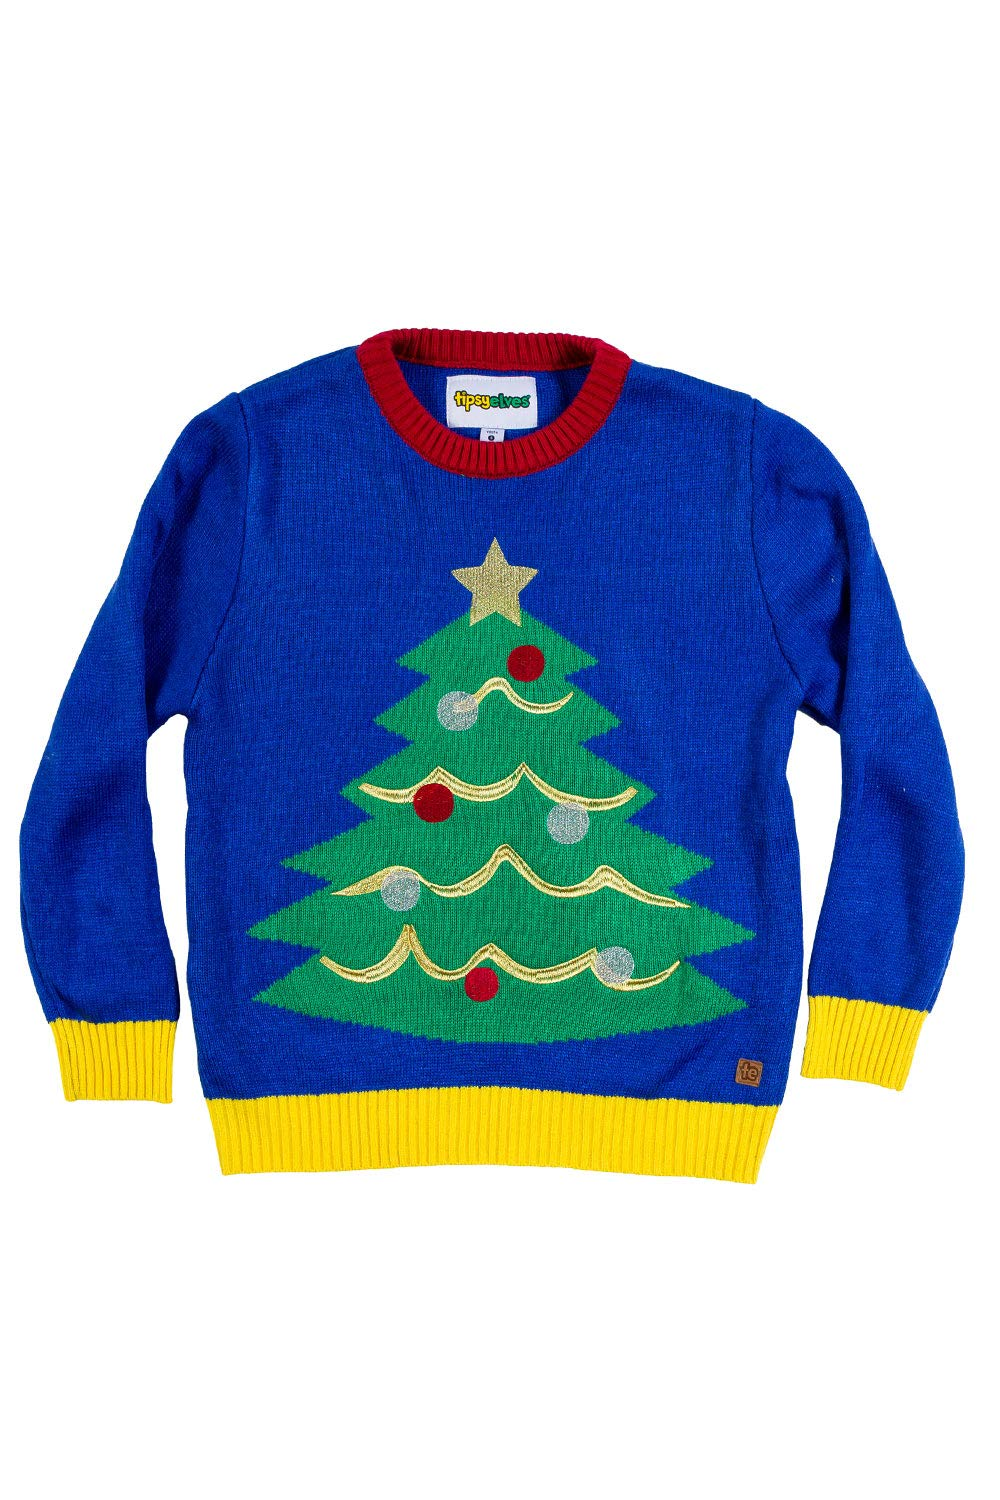 Tipsy Elves Baby Christmas Tree Ugly Christmas Sweater - Infant Ugly Sweater: 18-24M Blue by Tipsy Elves